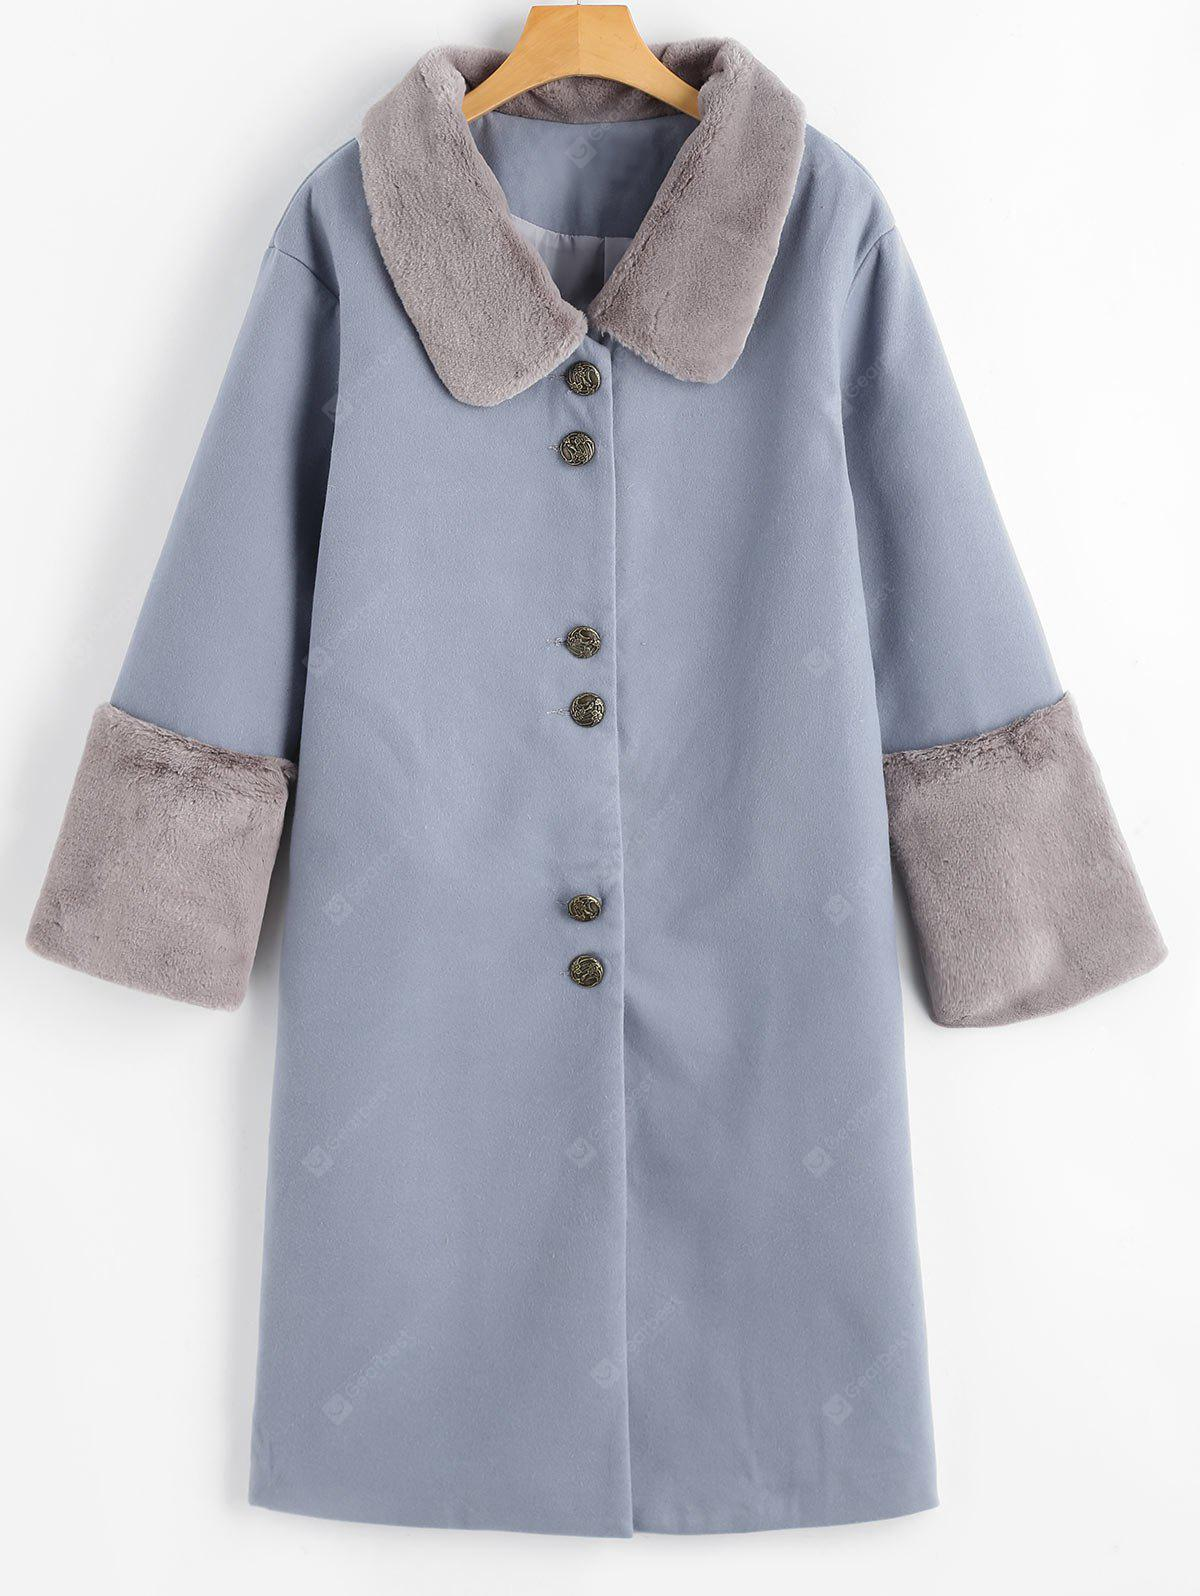 GREY BLUE L Button Up Faux Fur Trim Coat